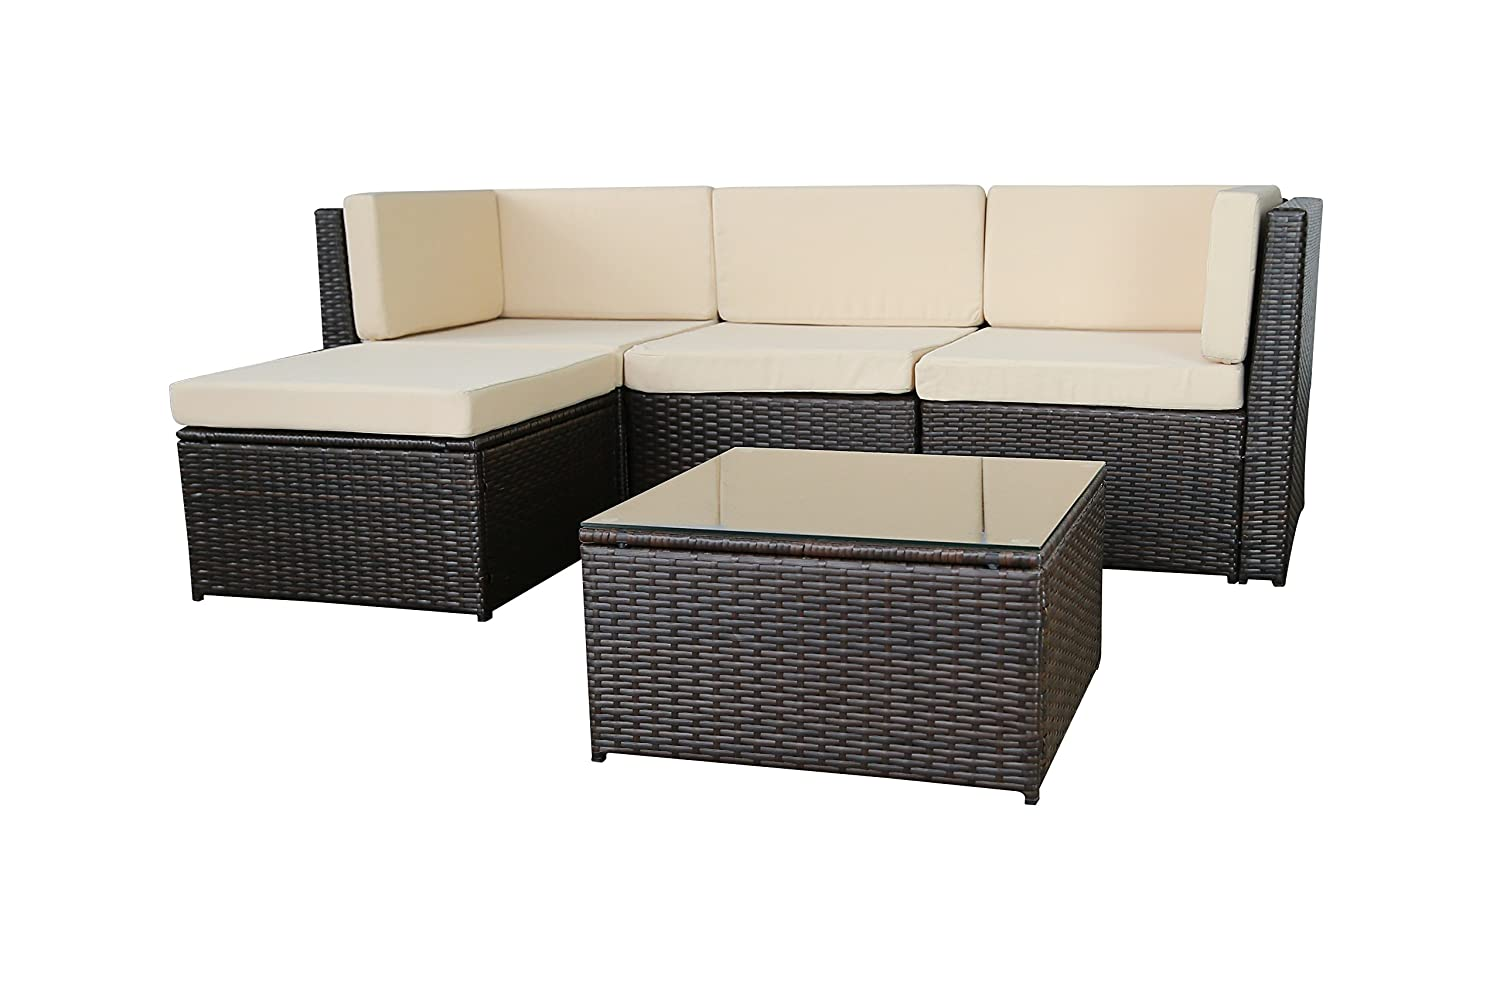 gartenfreude gartenm bel lounge gartenset garnitur sitzgruppe polyrattan 13 teilig. Black Bedroom Furniture Sets. Home Design Ideas